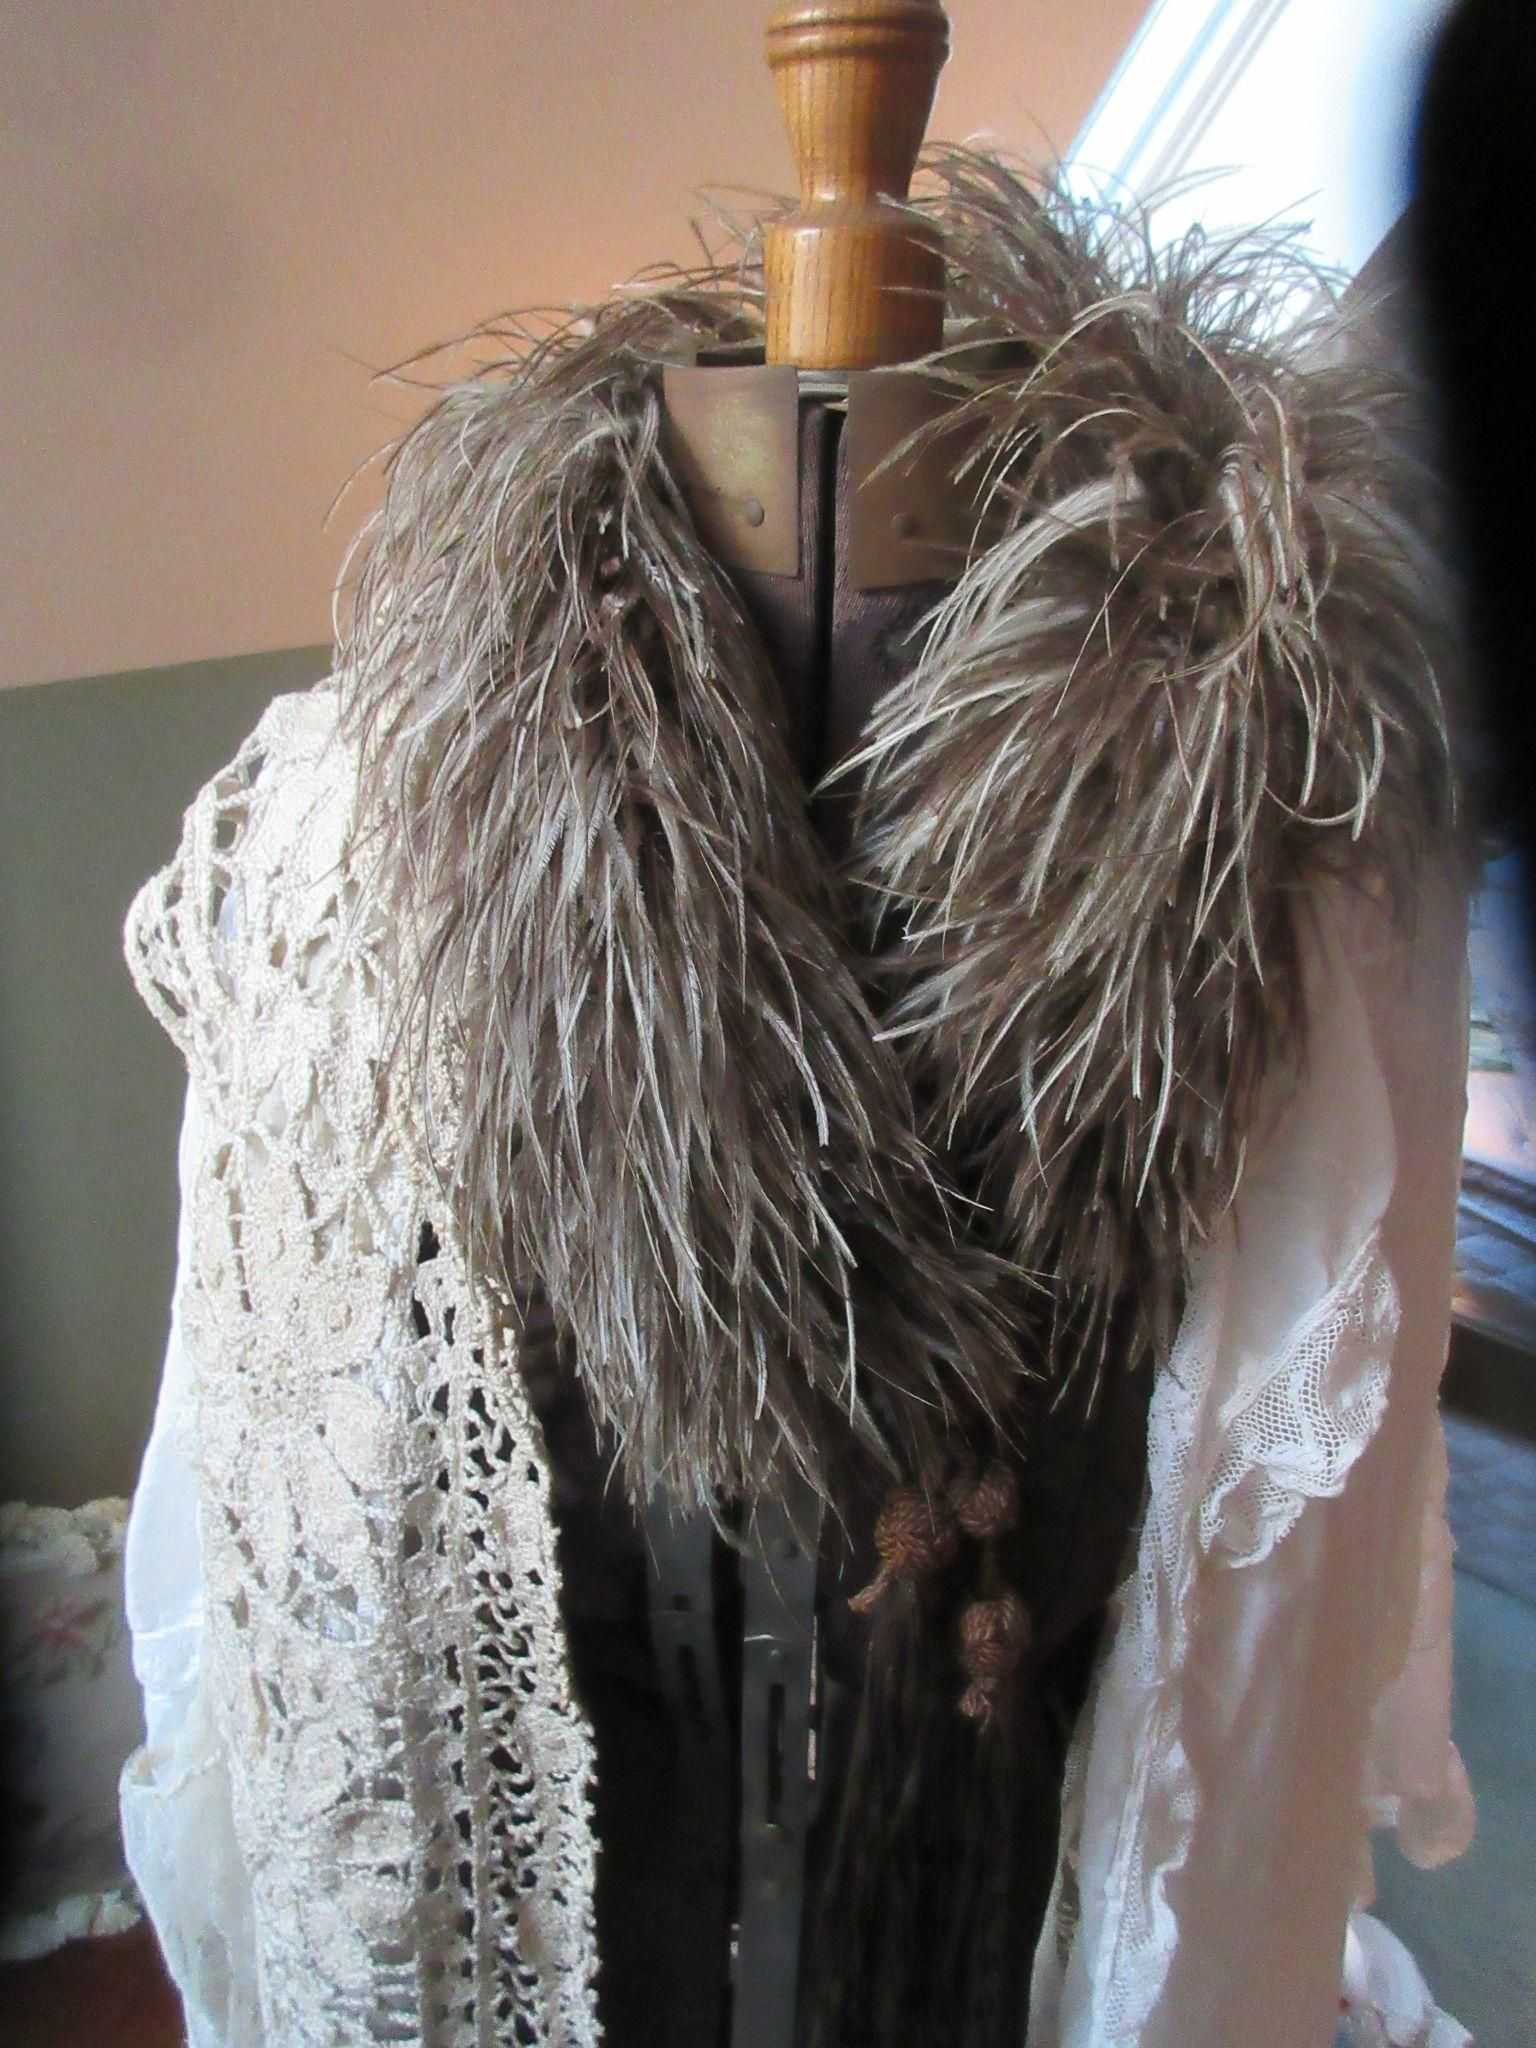 78ed431d85d Deco Ostrich Feather Boa 1920s 30s Flapper Tassels Vintage Grey Burlesque  Stole Collar